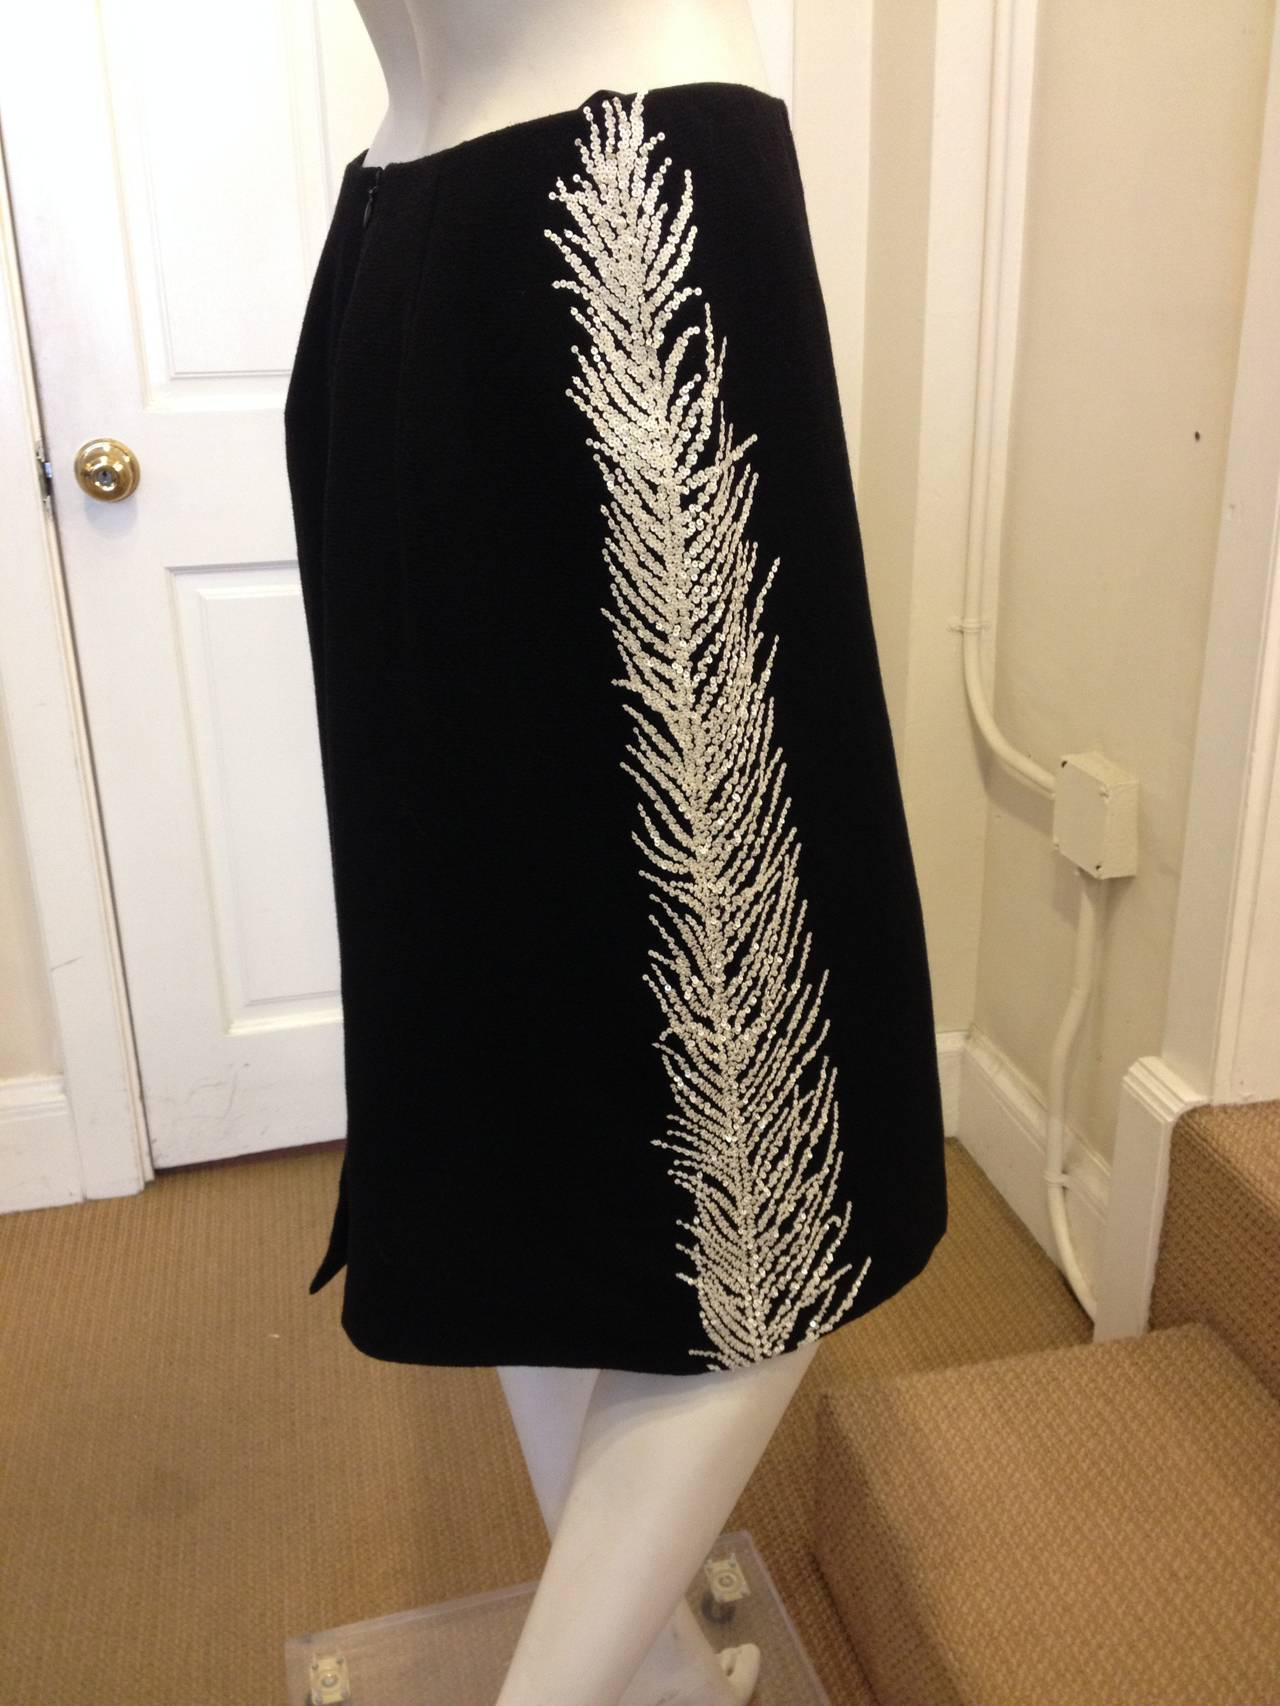 Vera Wang Black Skirt with White Sequin Detailing 2